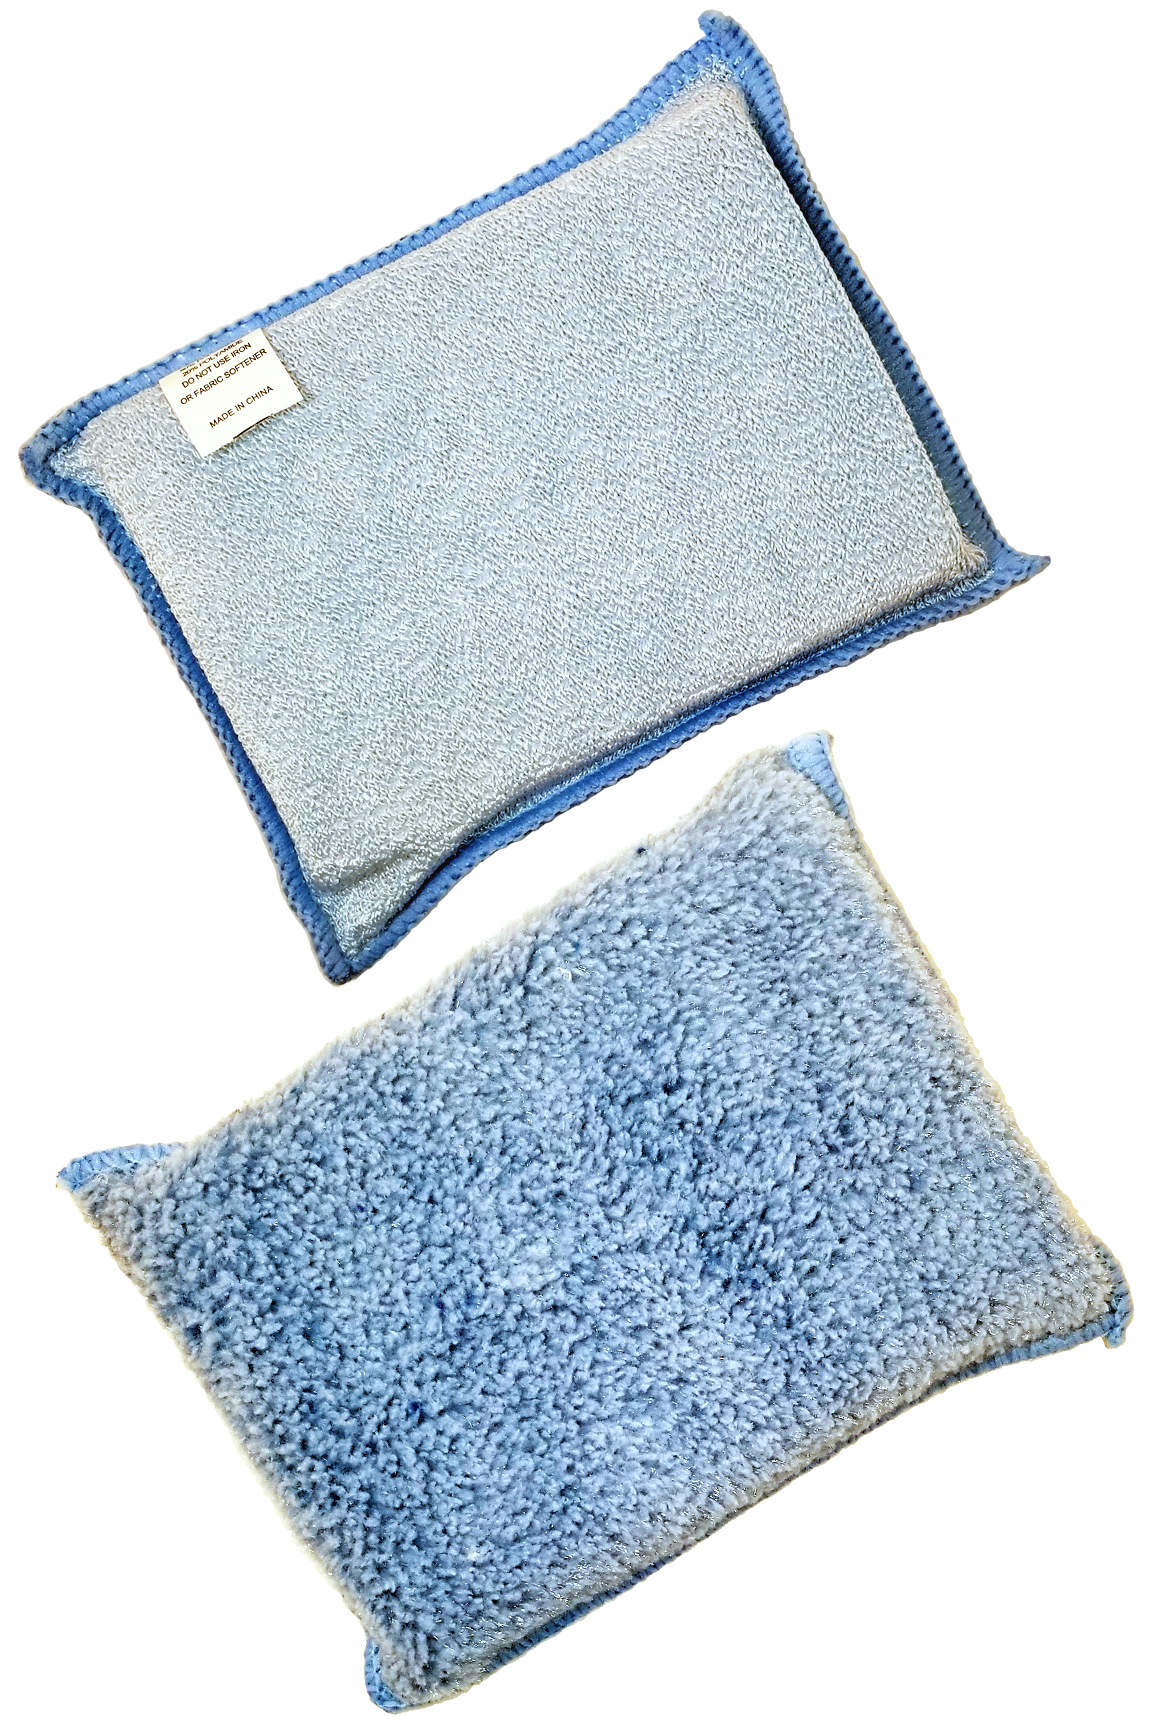 Dual Sided Cleaning Sponge